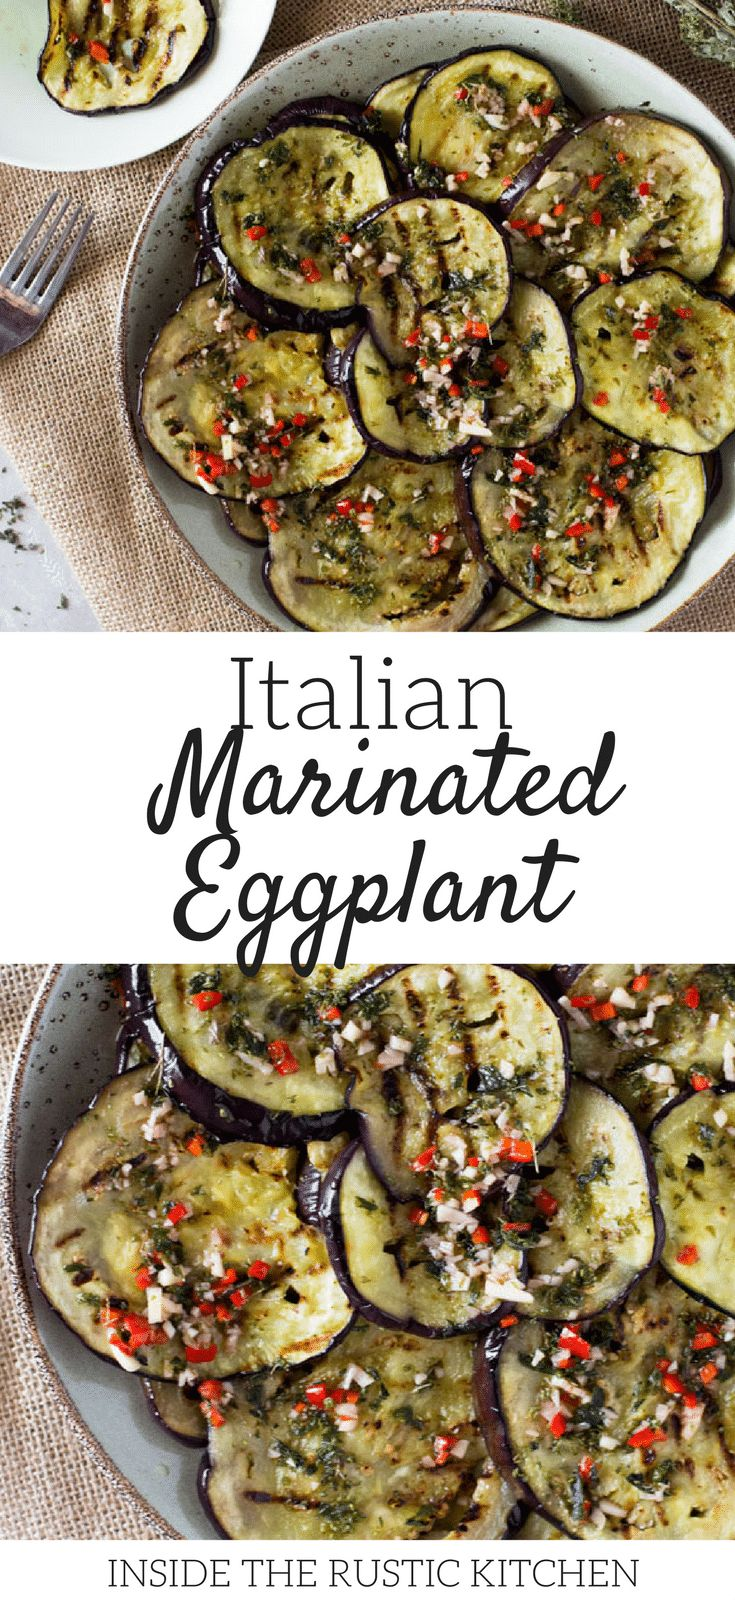 Easy Italian marinated eggplant recipe- grilled eggplant/aubergine marinated in garlic, oregano, chili and mint. Perfect as a side, with salad or as an antipasto with drinks. So easy, you'll love it, inside the rustic kitchen. via @InsideTRK